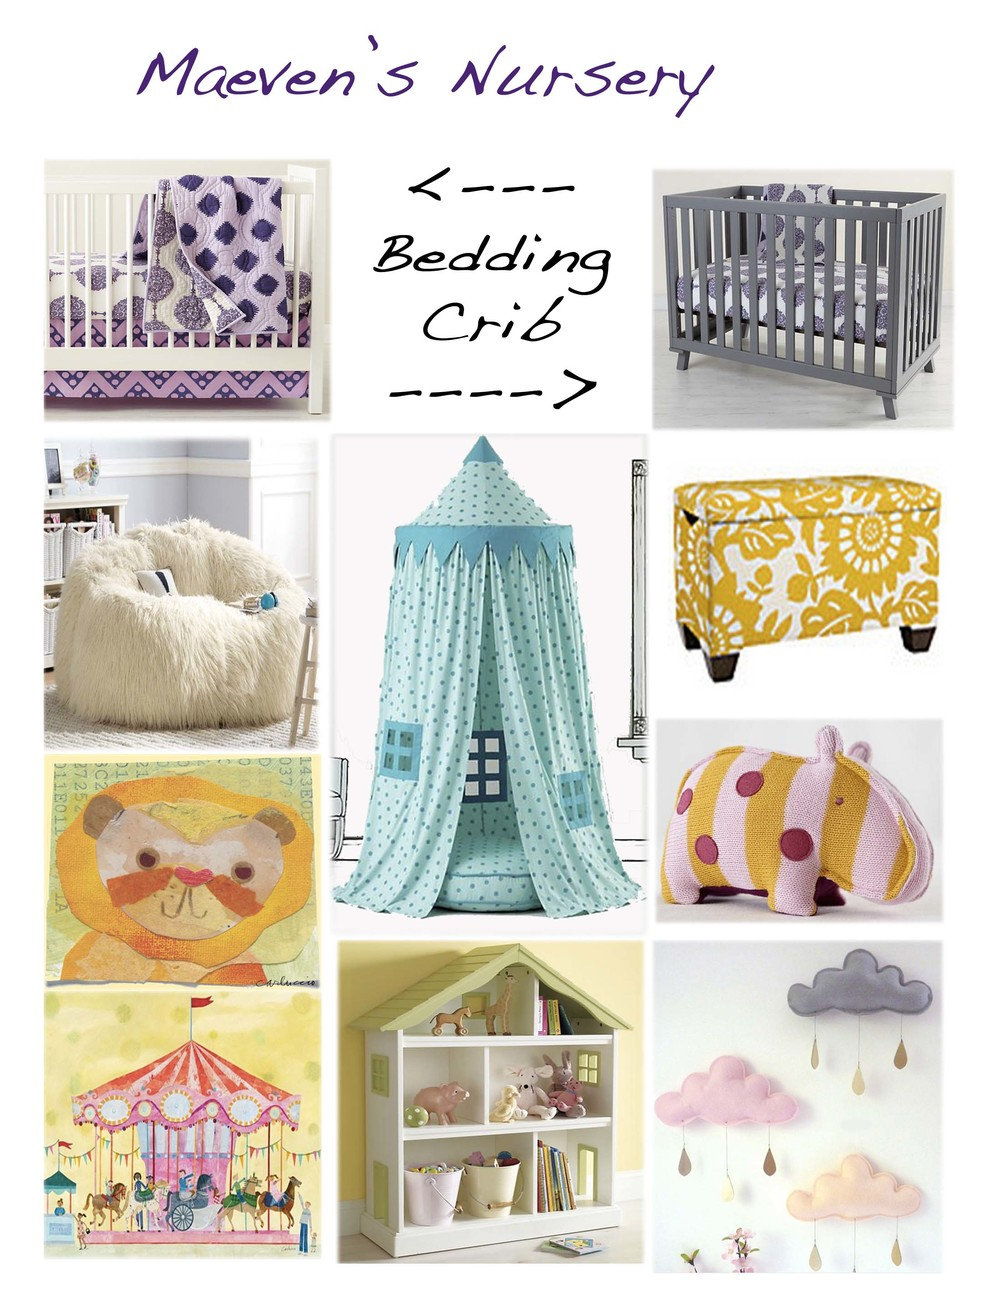 Crib bedding by Land of Nod Grey Crib by Land of Nod Sherpa Couch by Pottery Barn Teen Play Canopy by Land of Nod Toy box by Land of Nod Elephant Animal by Land of Nod Lion Artwork by Oopsy Daisy Carousel Artwork by Oopsy Daisy Dollhouse bookcase by Land of Nod Cloud Mobile by Le Petit Papilon